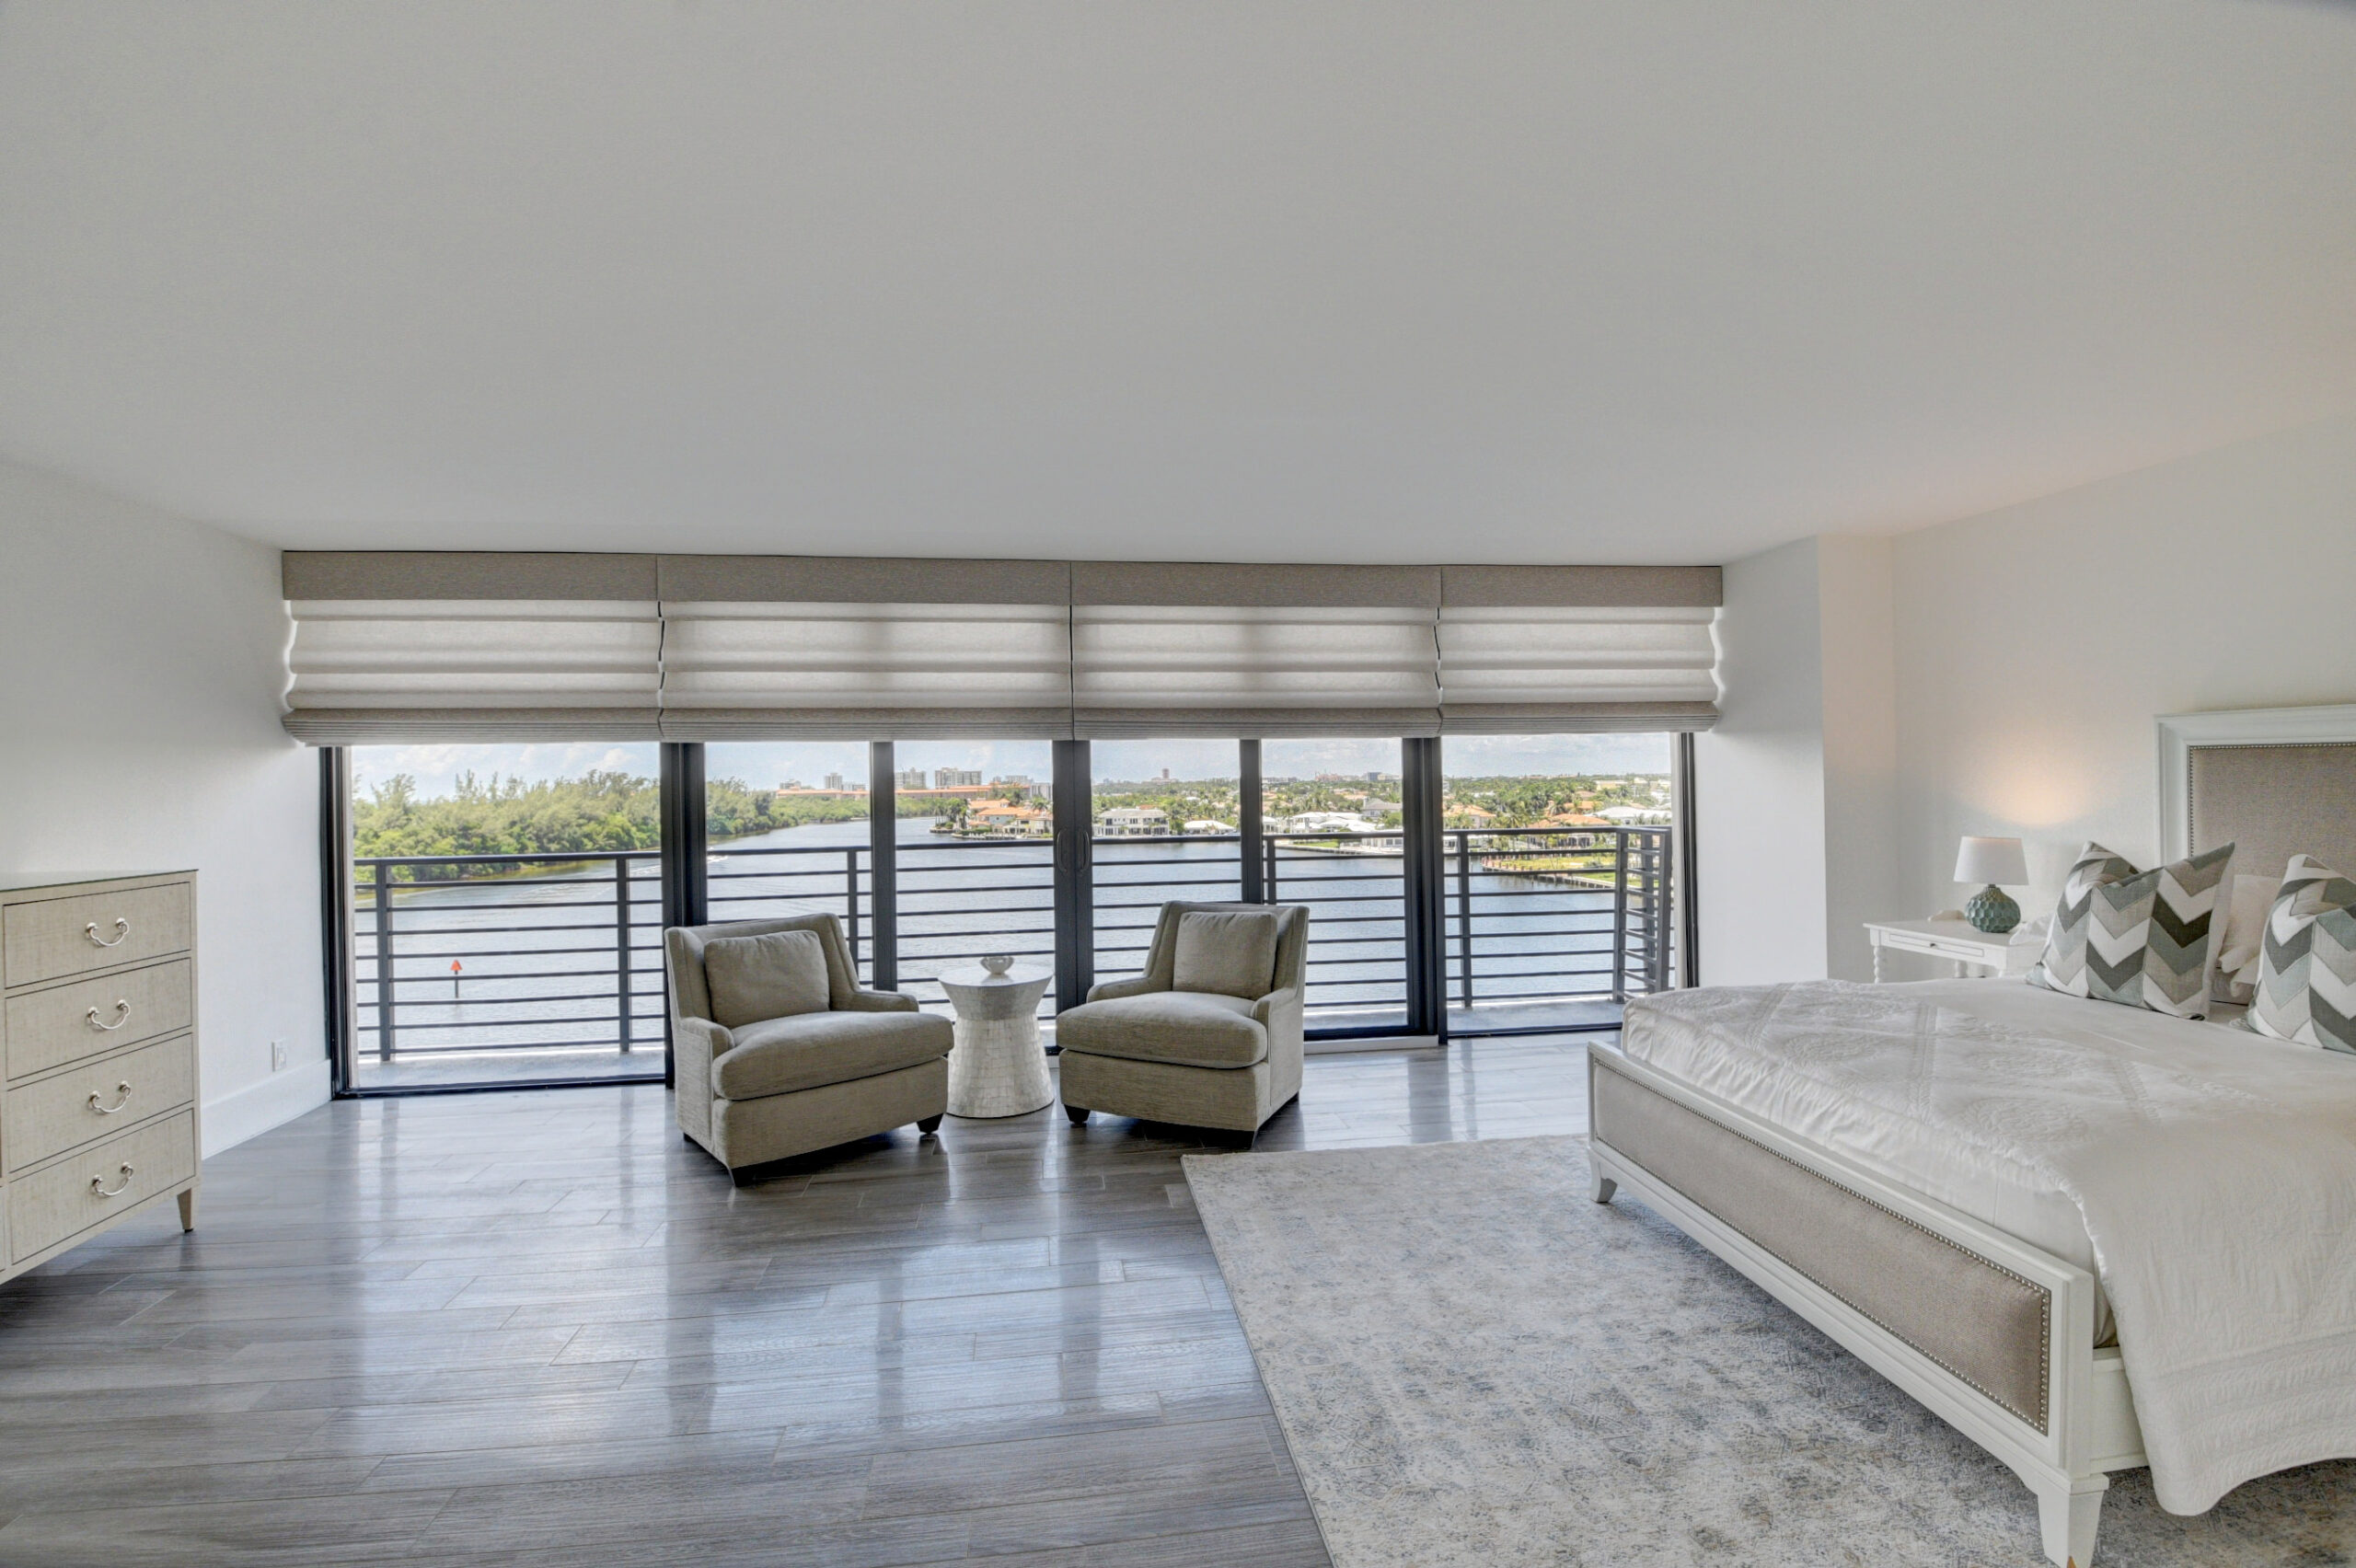 Boca Raton Luxury real estate interior room, with a view of the marina.